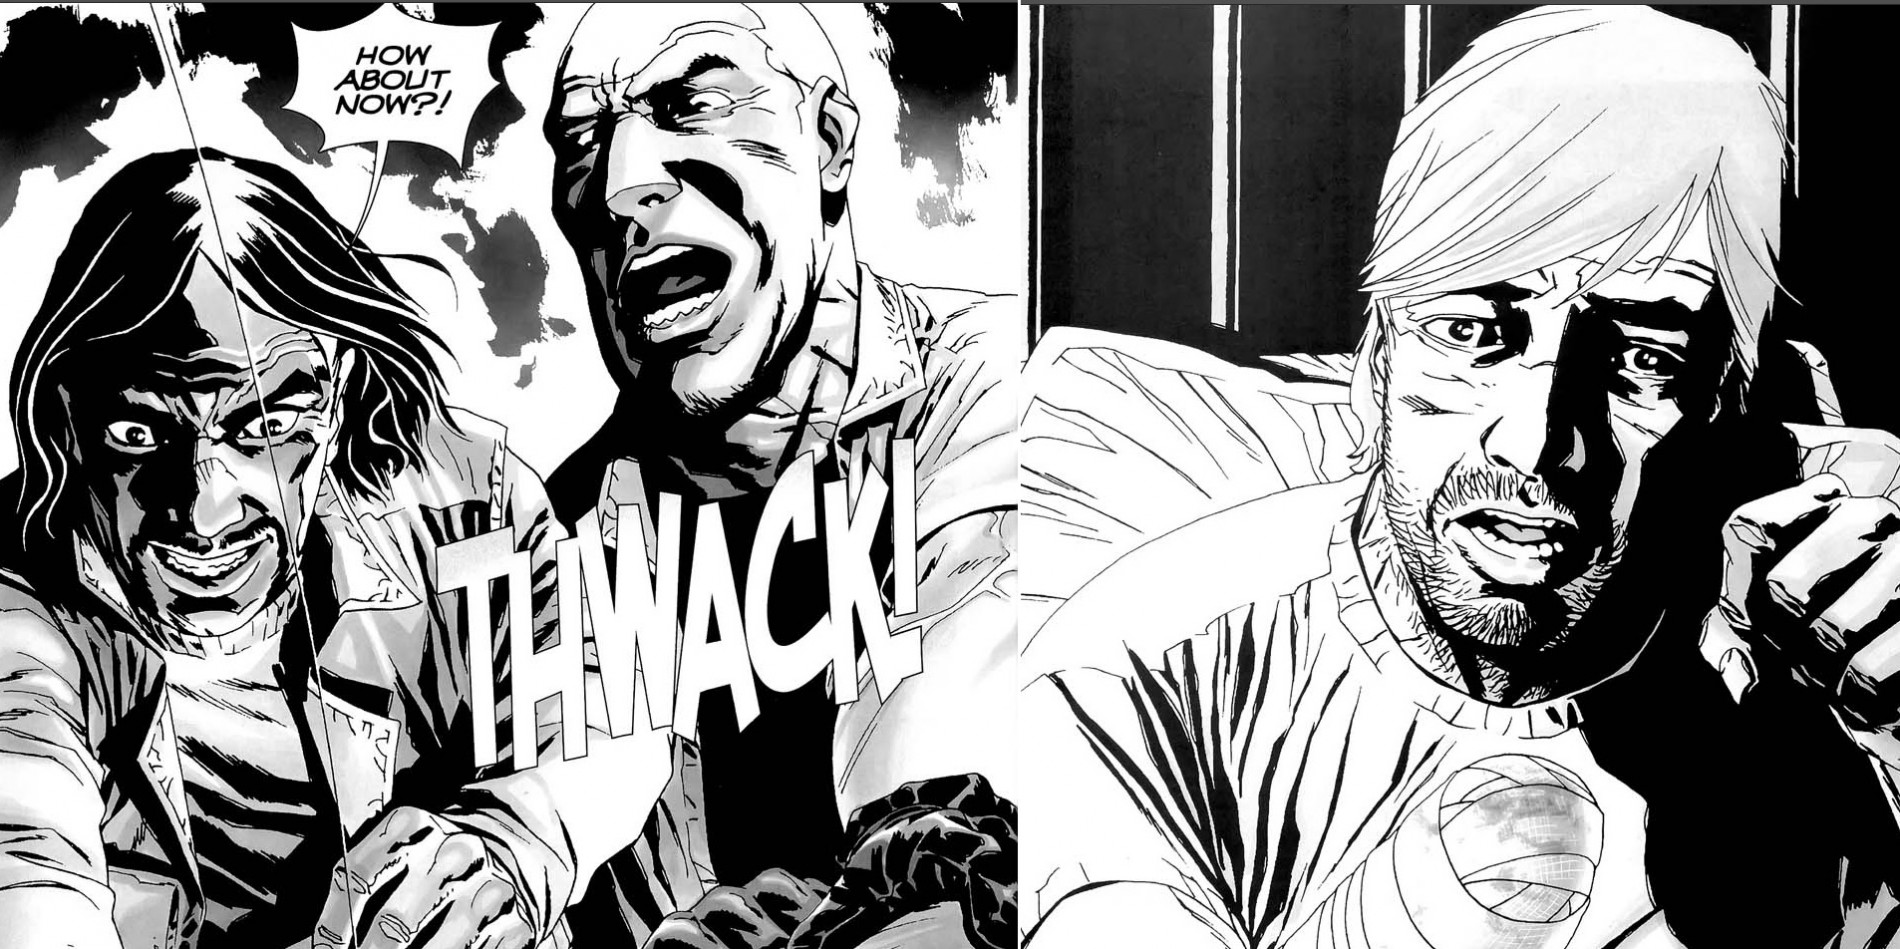 The Governor cuts Rick's hand off in The Walking Dead comic